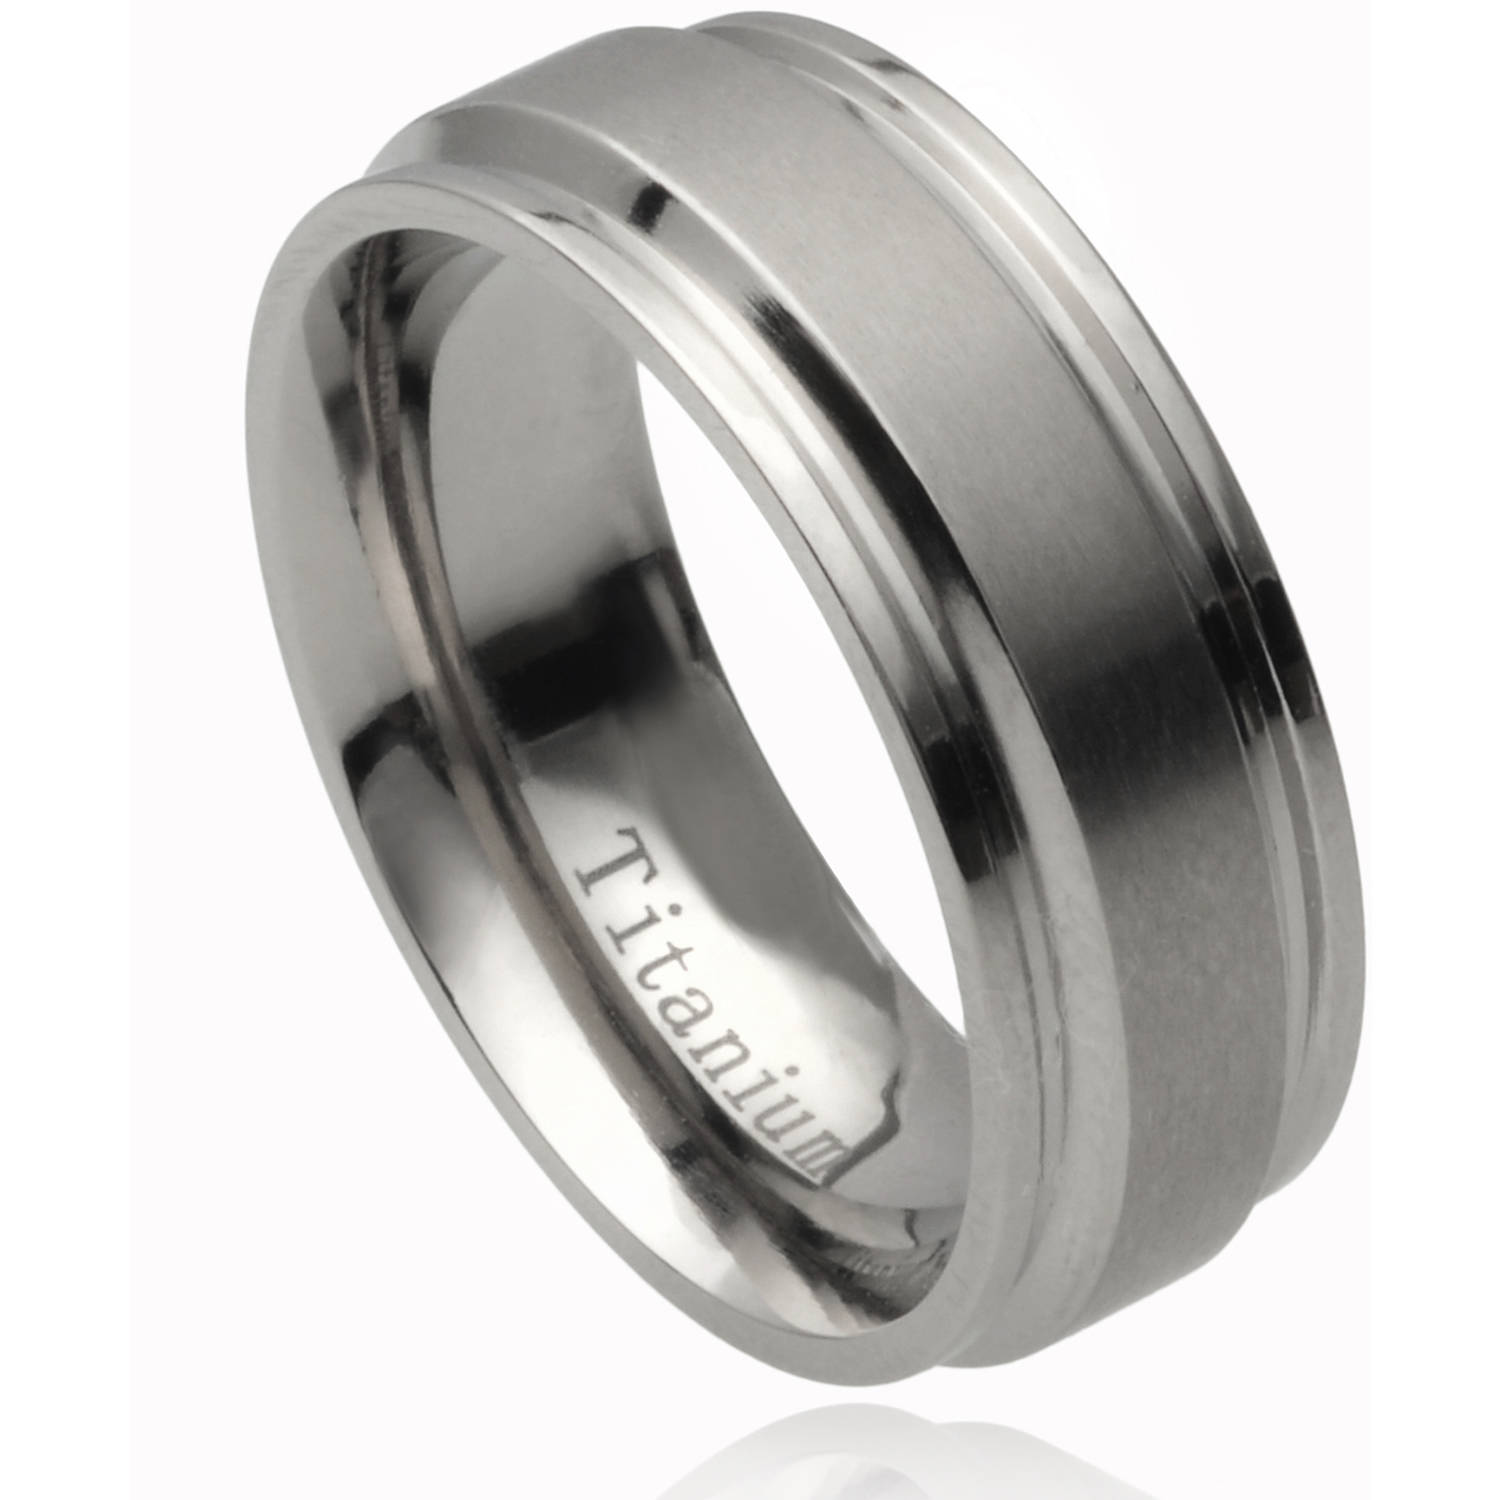 Daxx Men's Titanium Polished Tribal Design Band, 8mm